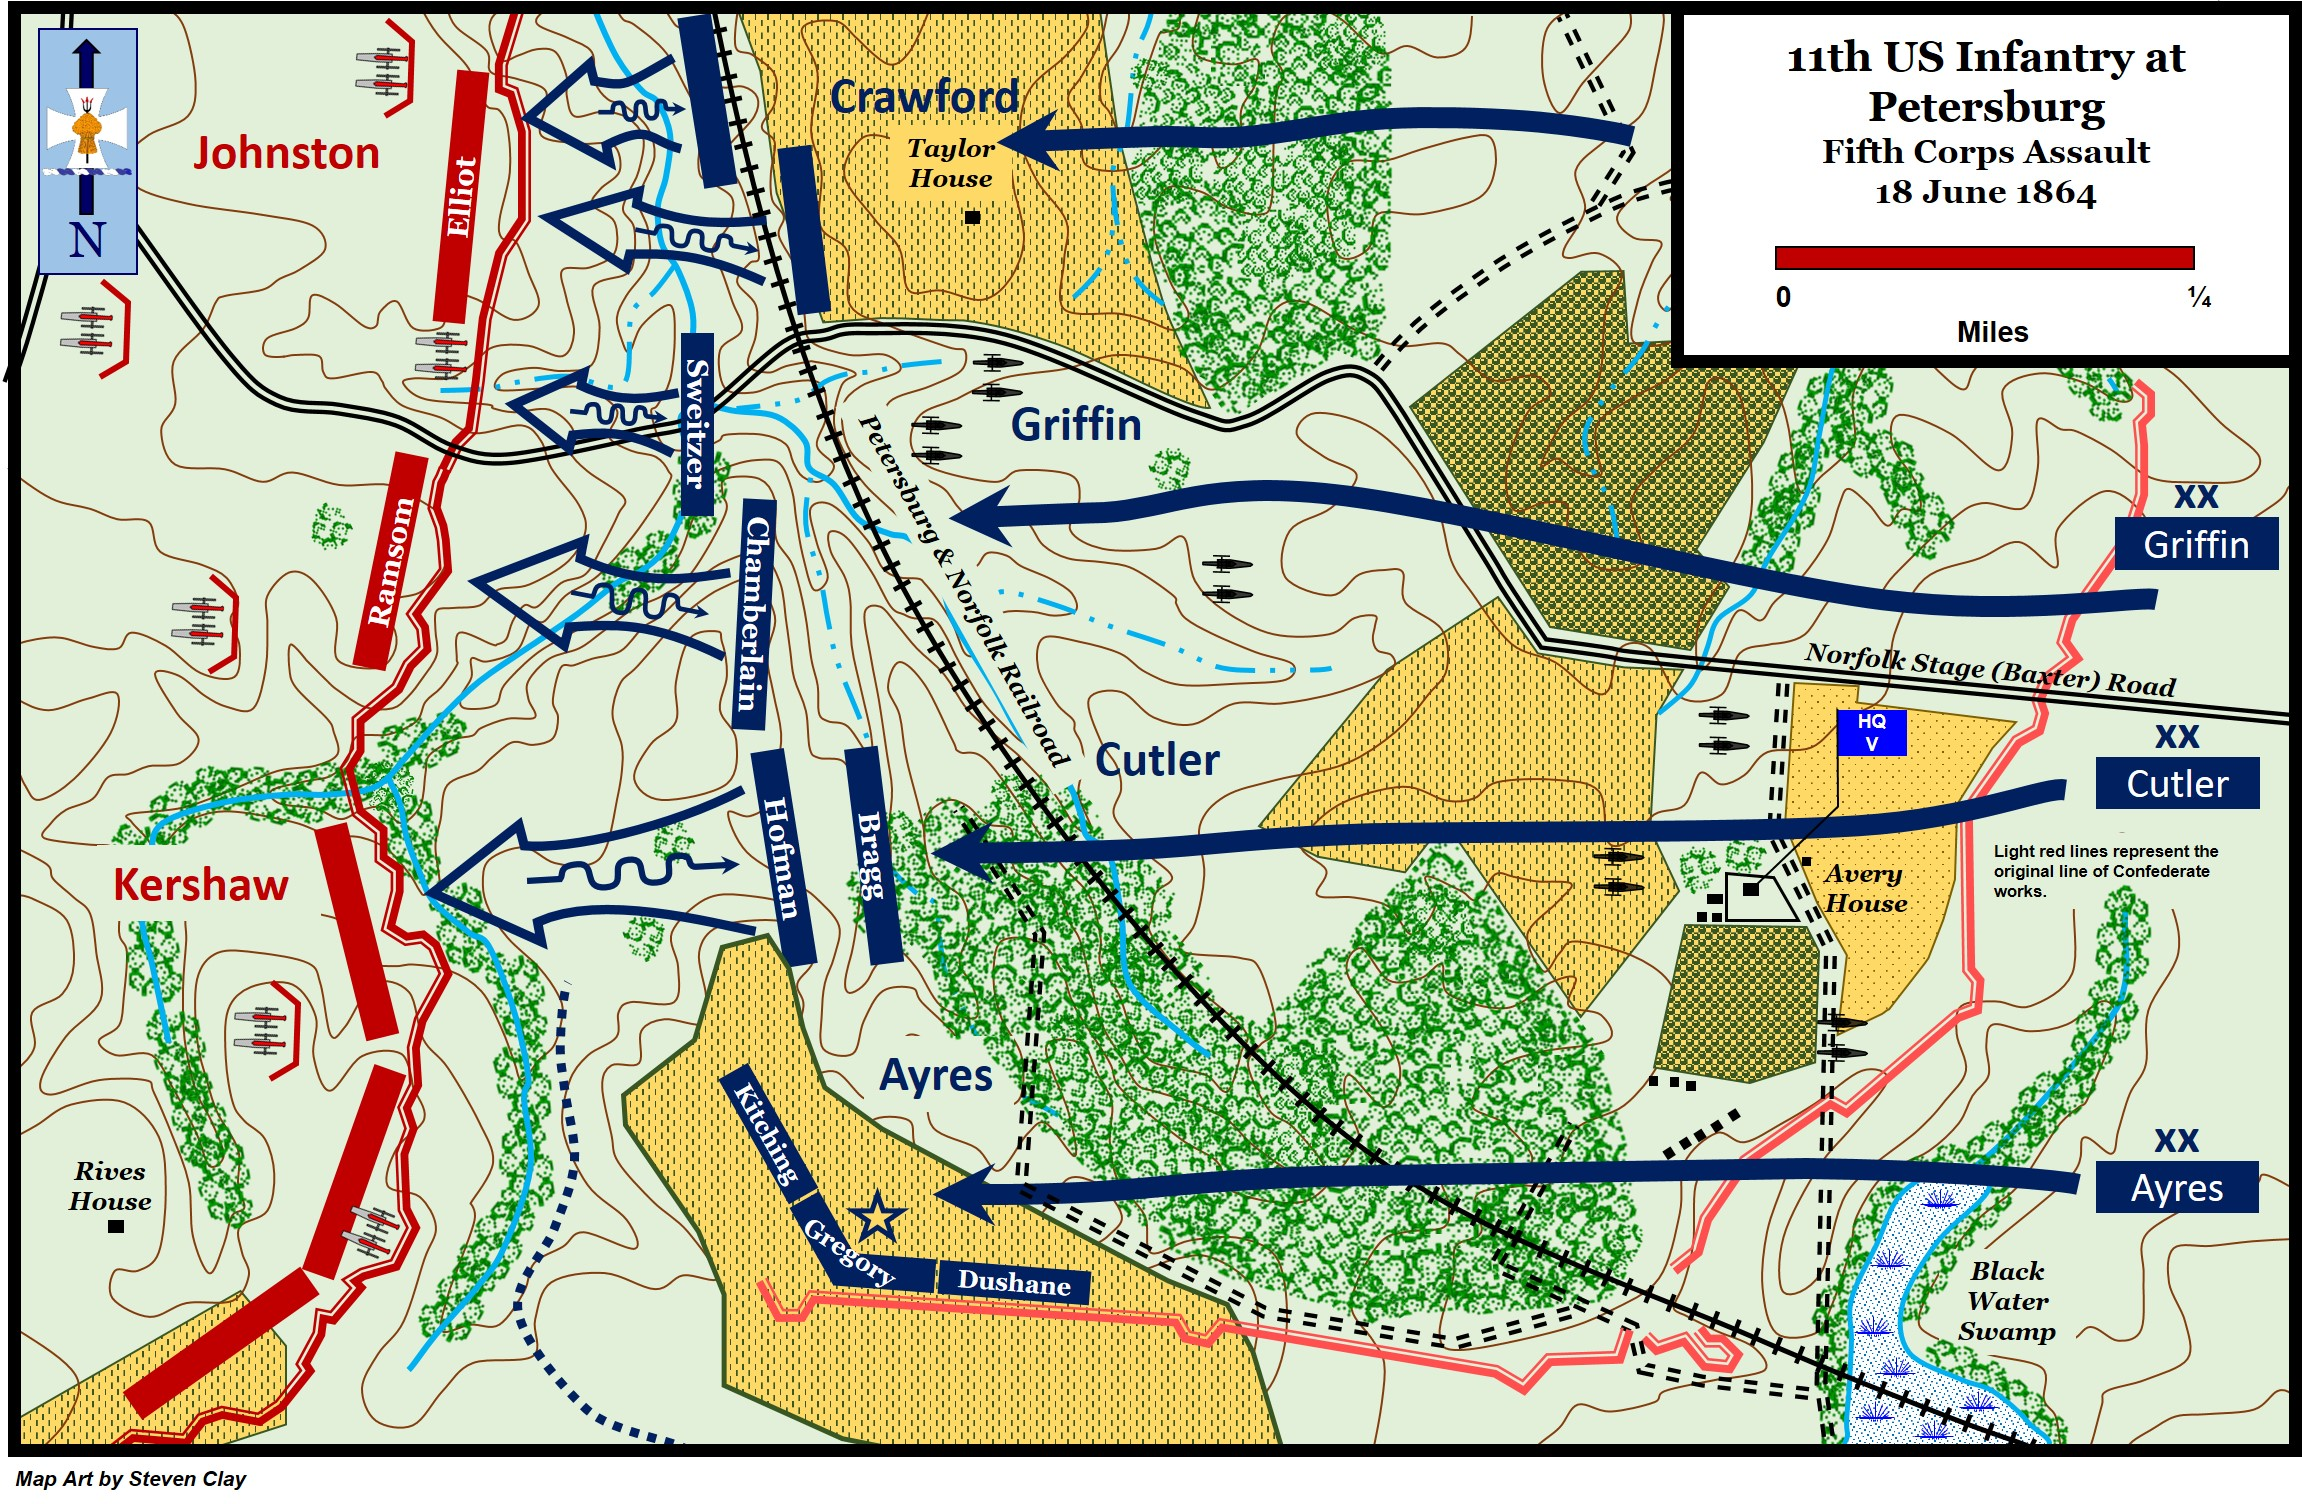 Map The Second Battle Of Petersburg Fifth Corps Assault June 18 - Us-map-1864